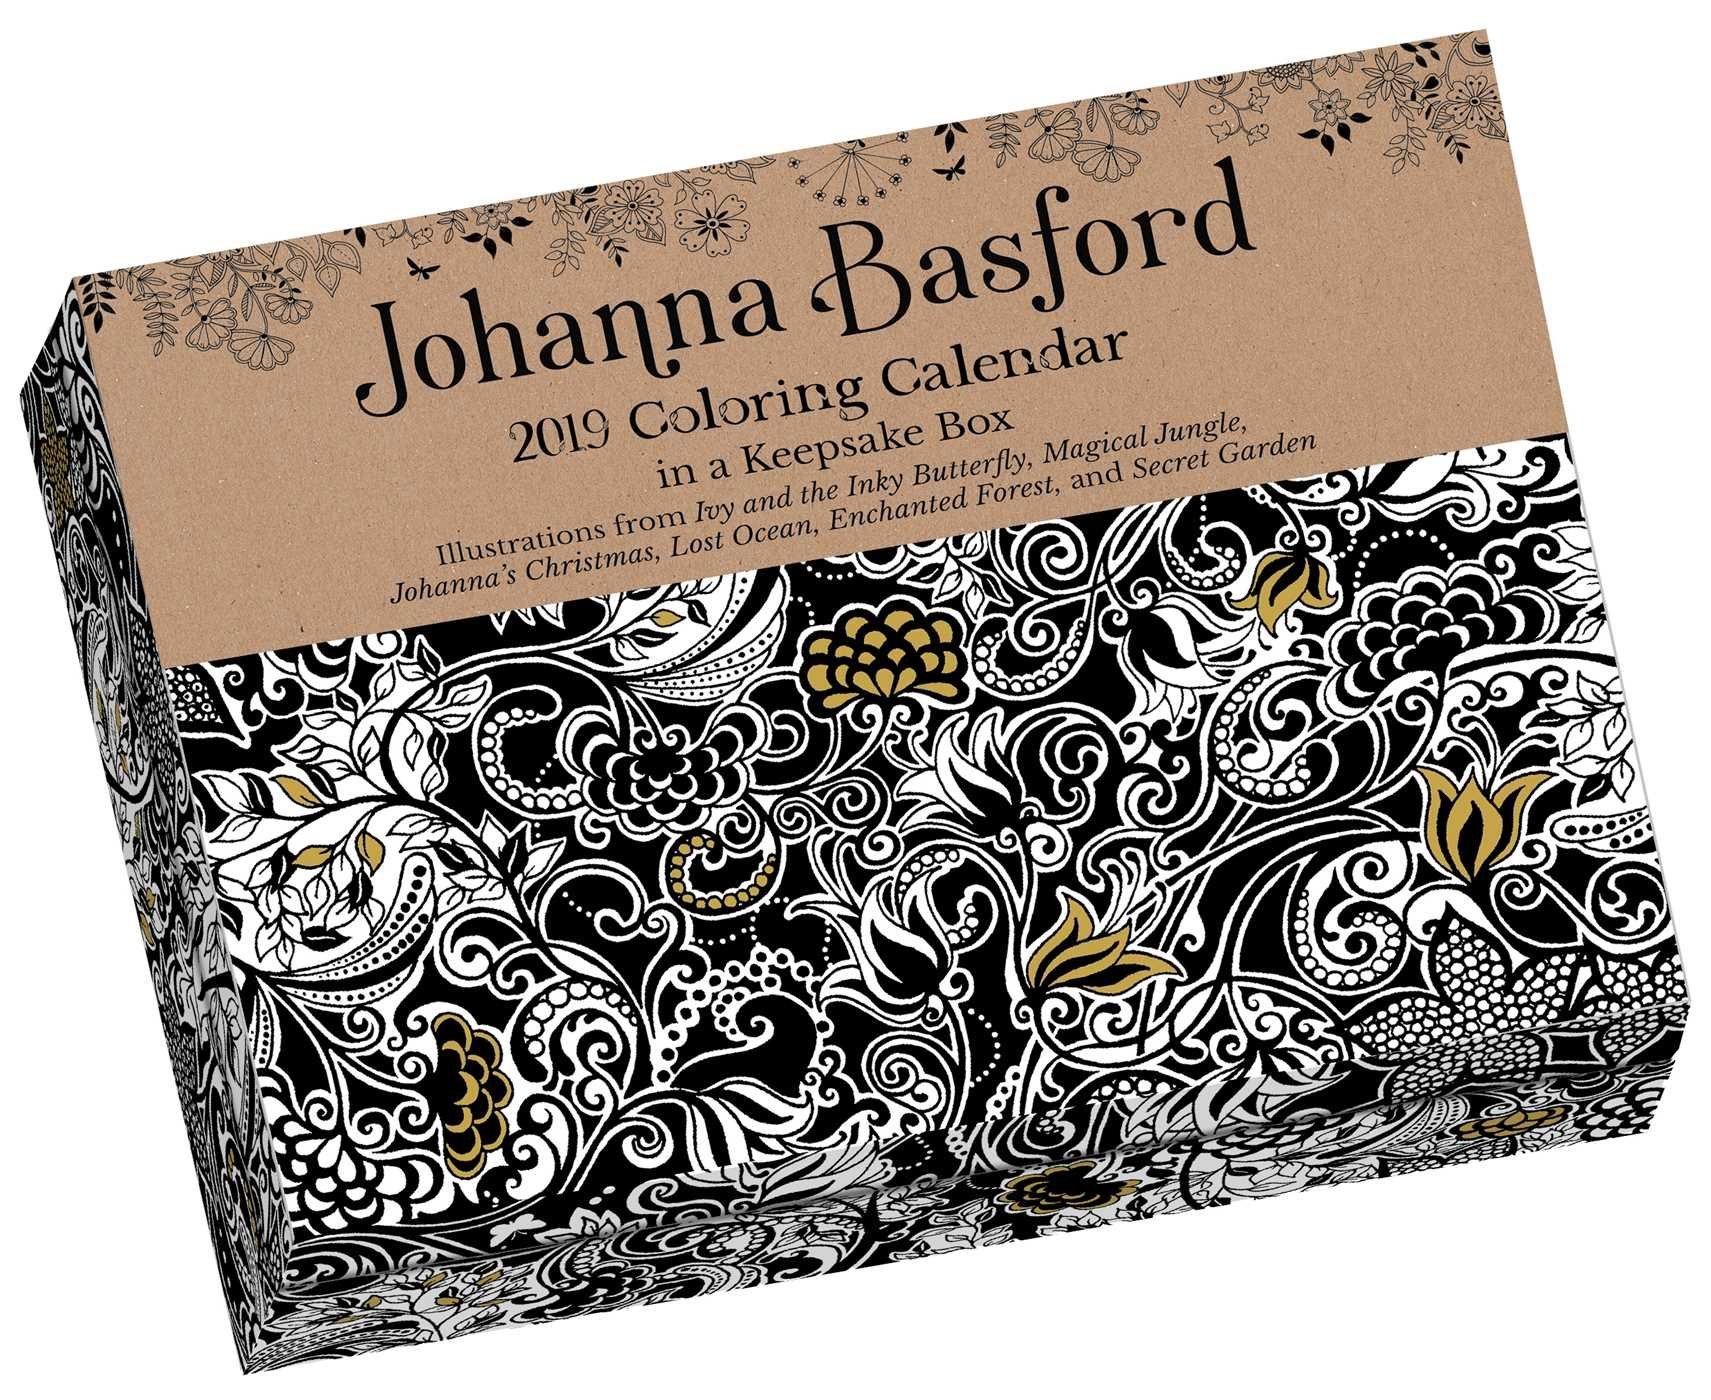 2019 Coloring Wall Calendar With Johanna Basford Amazon Co Uk